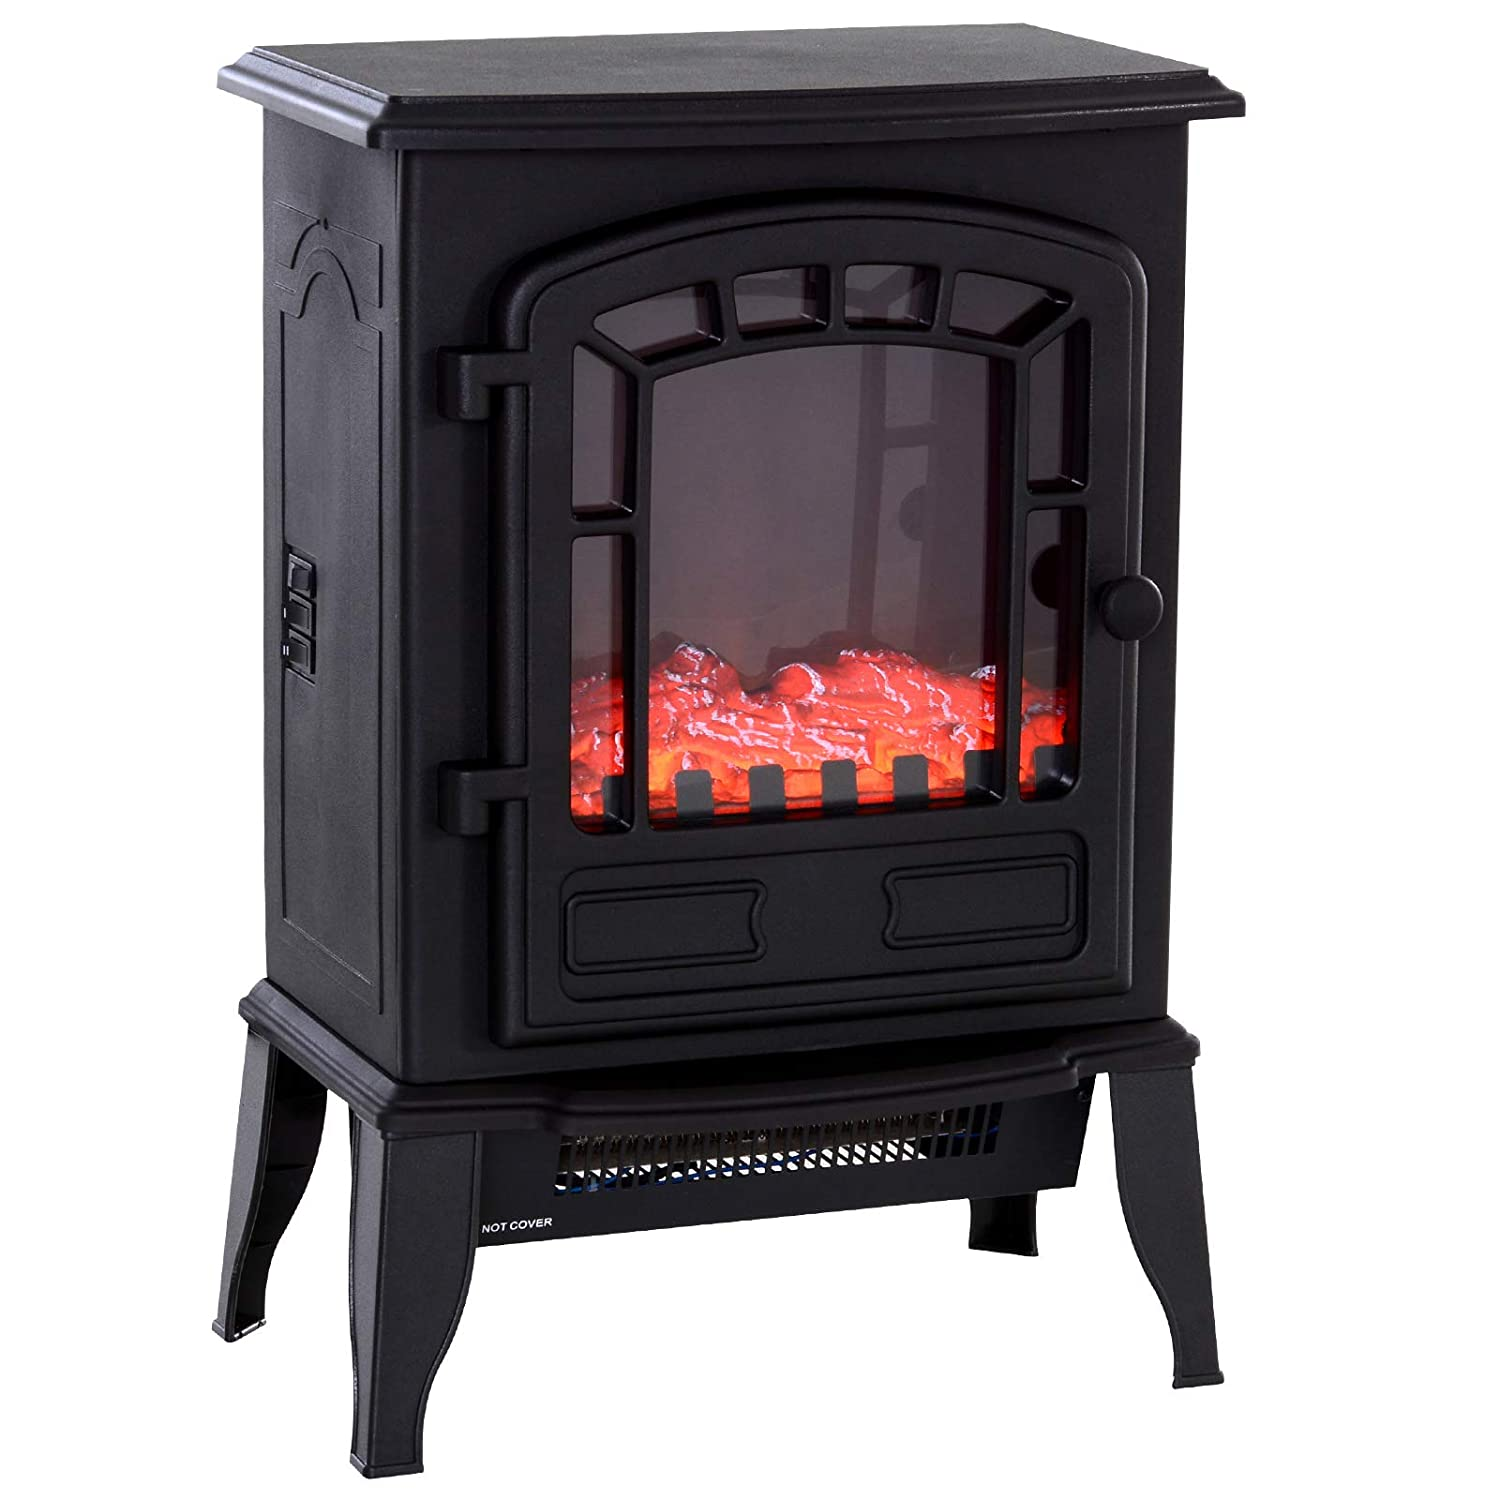 HOMCOM Freestanding 1500W Steel Electric Fireplace Stove Space Heater Infrared LED, 9.5 W, Black